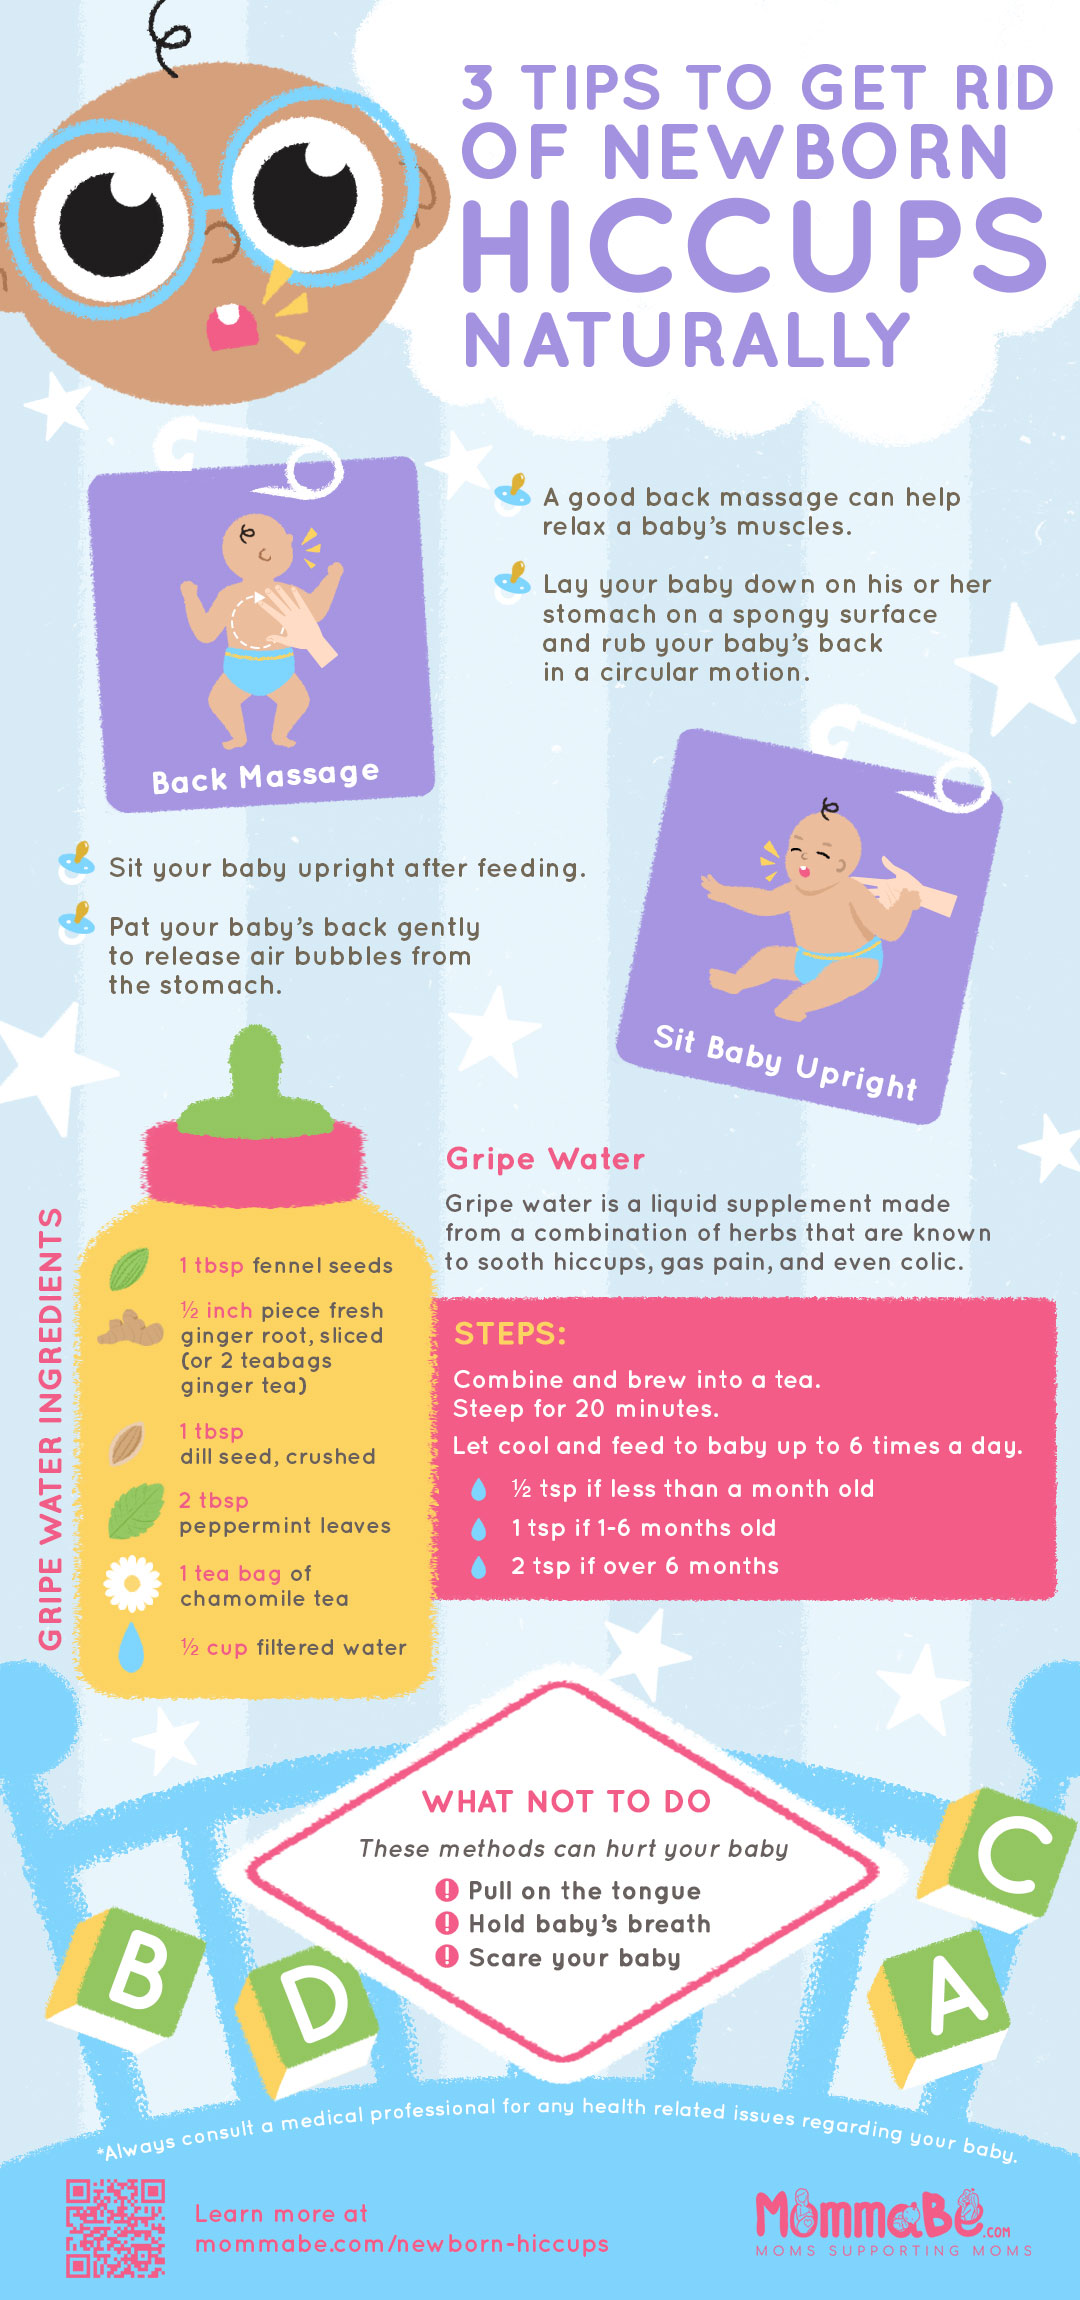 How To Prevent And Cure Newborn Hiccups [INFOGRAPHIC]